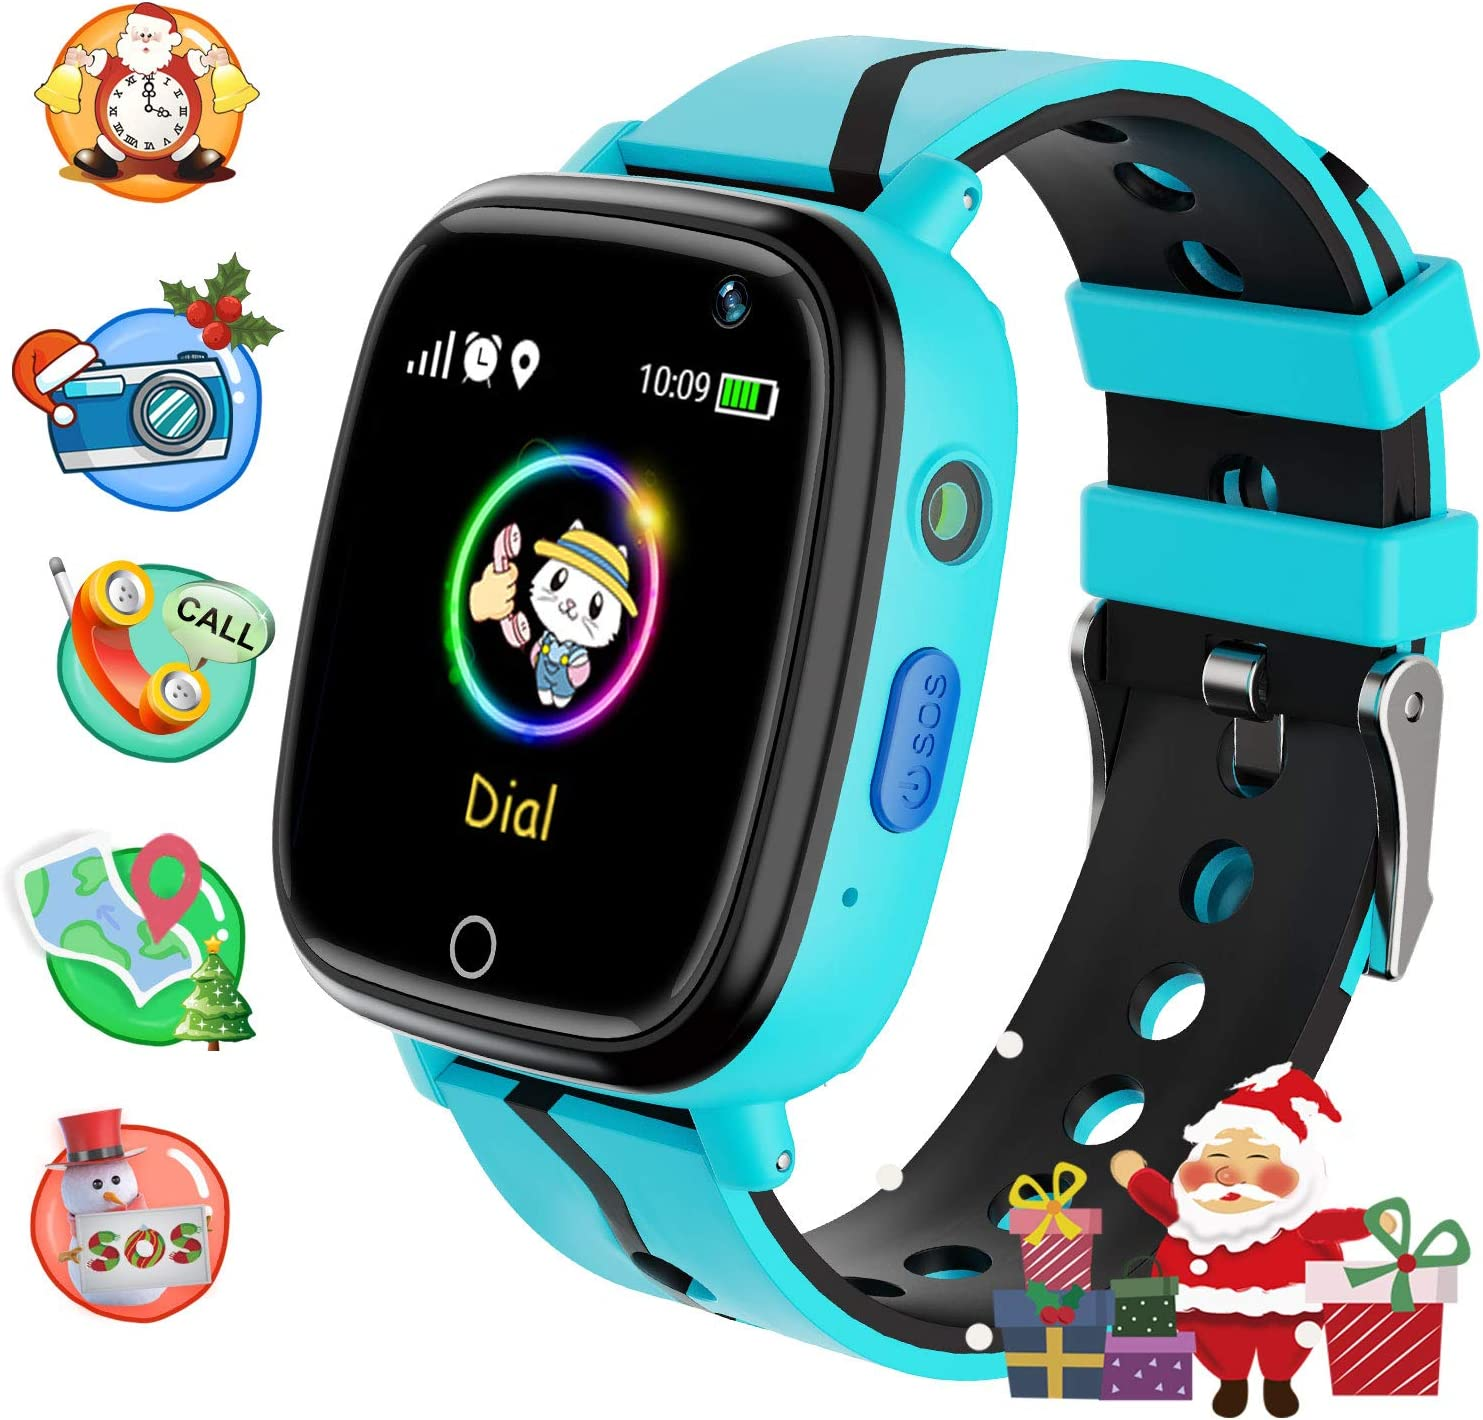 Childrens Watches Phone, Sports Kids Smart Watches for 4-15y Boys and Girls, HD Touch Screen Smartwatch Phone Real-time Positioning with Call Remote ...